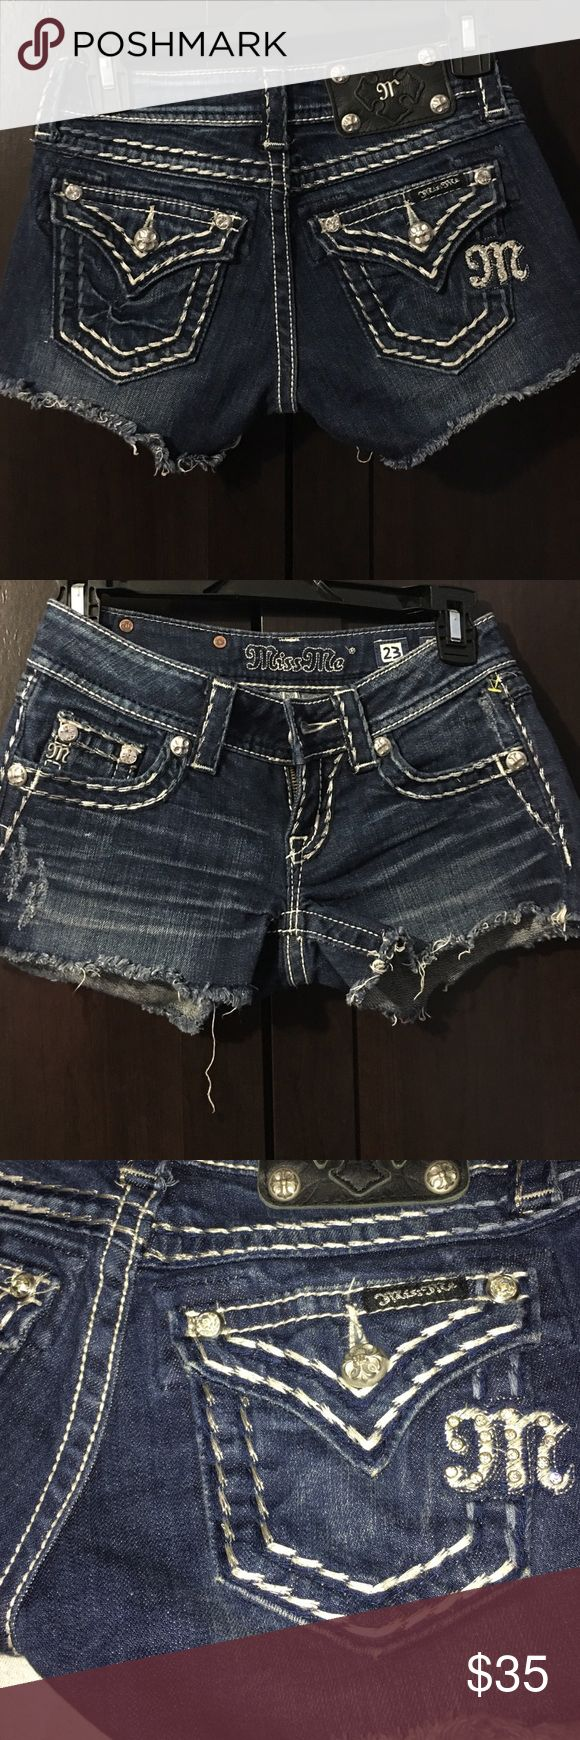 Miss Me denim shorts Good condition. Only worn a few times. Open to reasonable offers and trades. Miss Me Shorts Jean Shorts